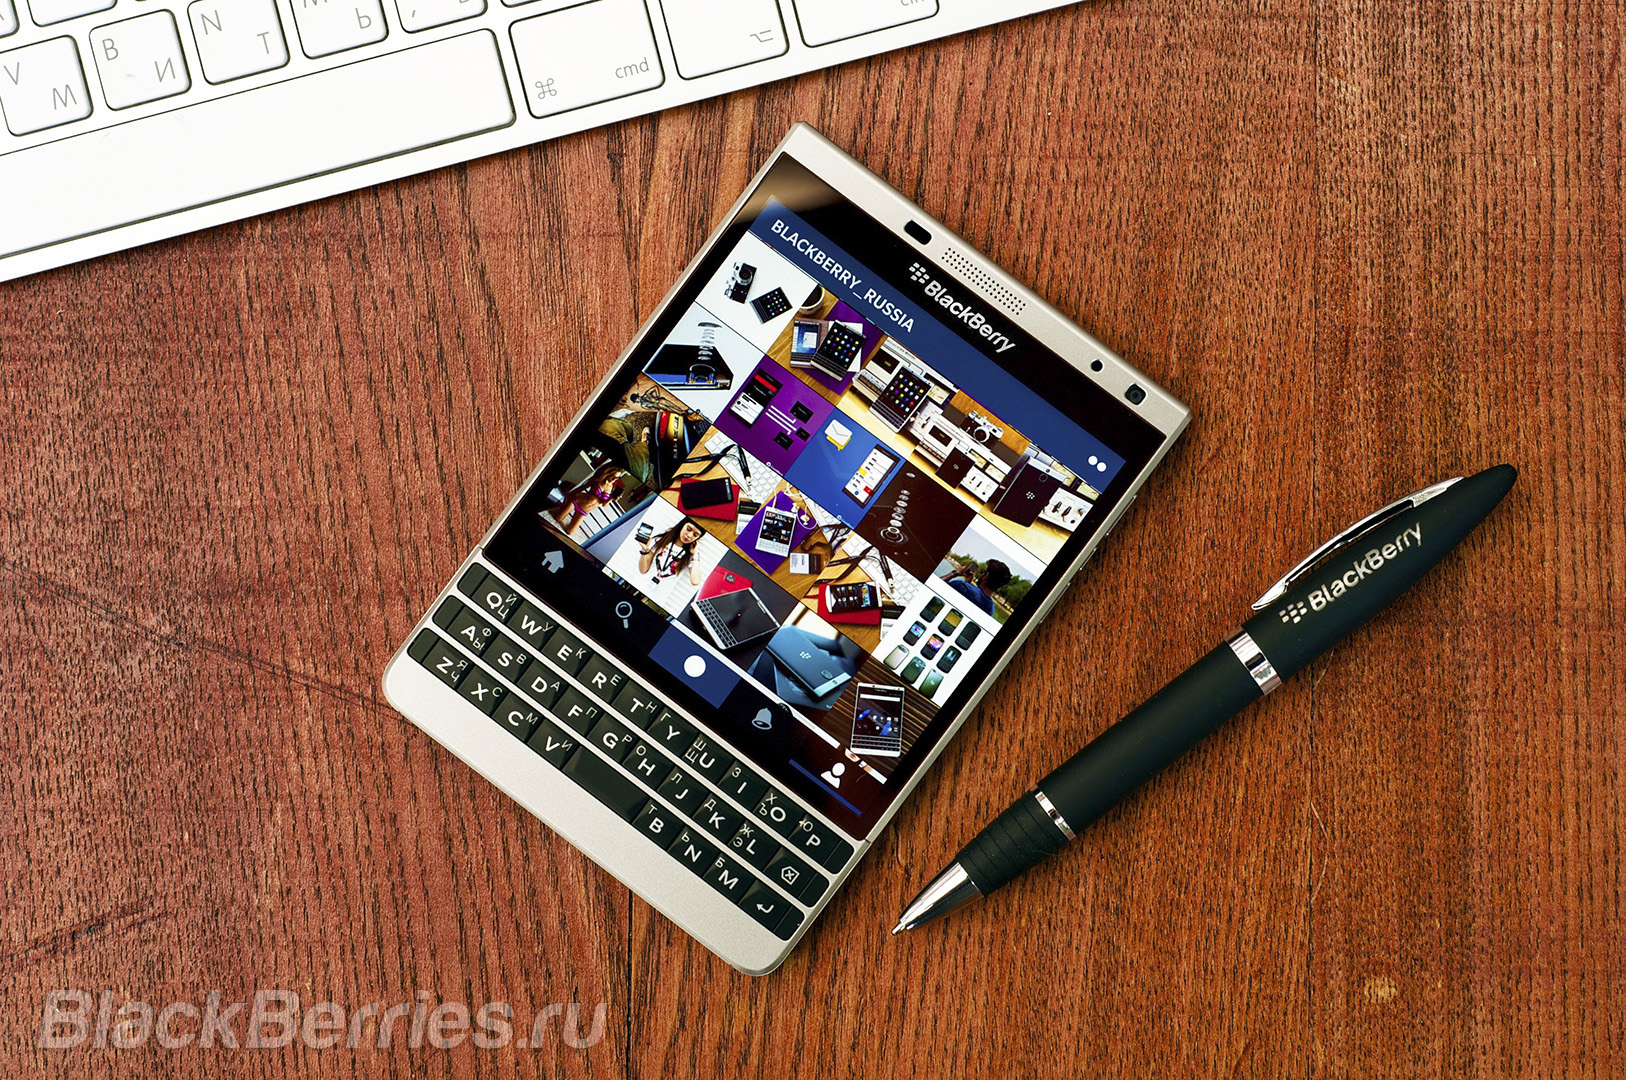 BlackBerry-Passport-Silver-Apps-15-1